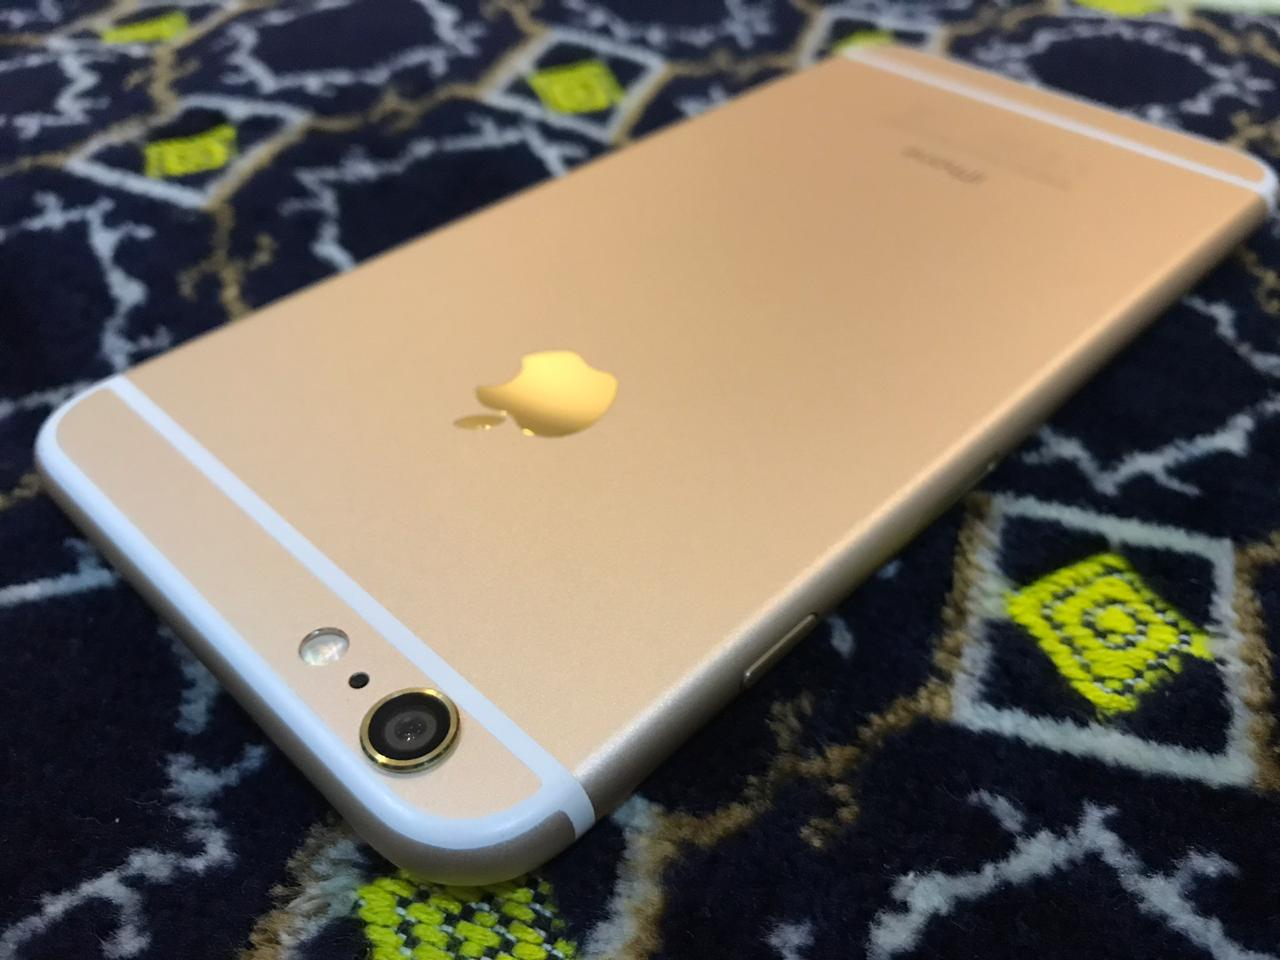 Apple iPhone 6 Plus 16gb Gold just Like Zero 10/10 IMEI Match Complete Accessories - photo 1